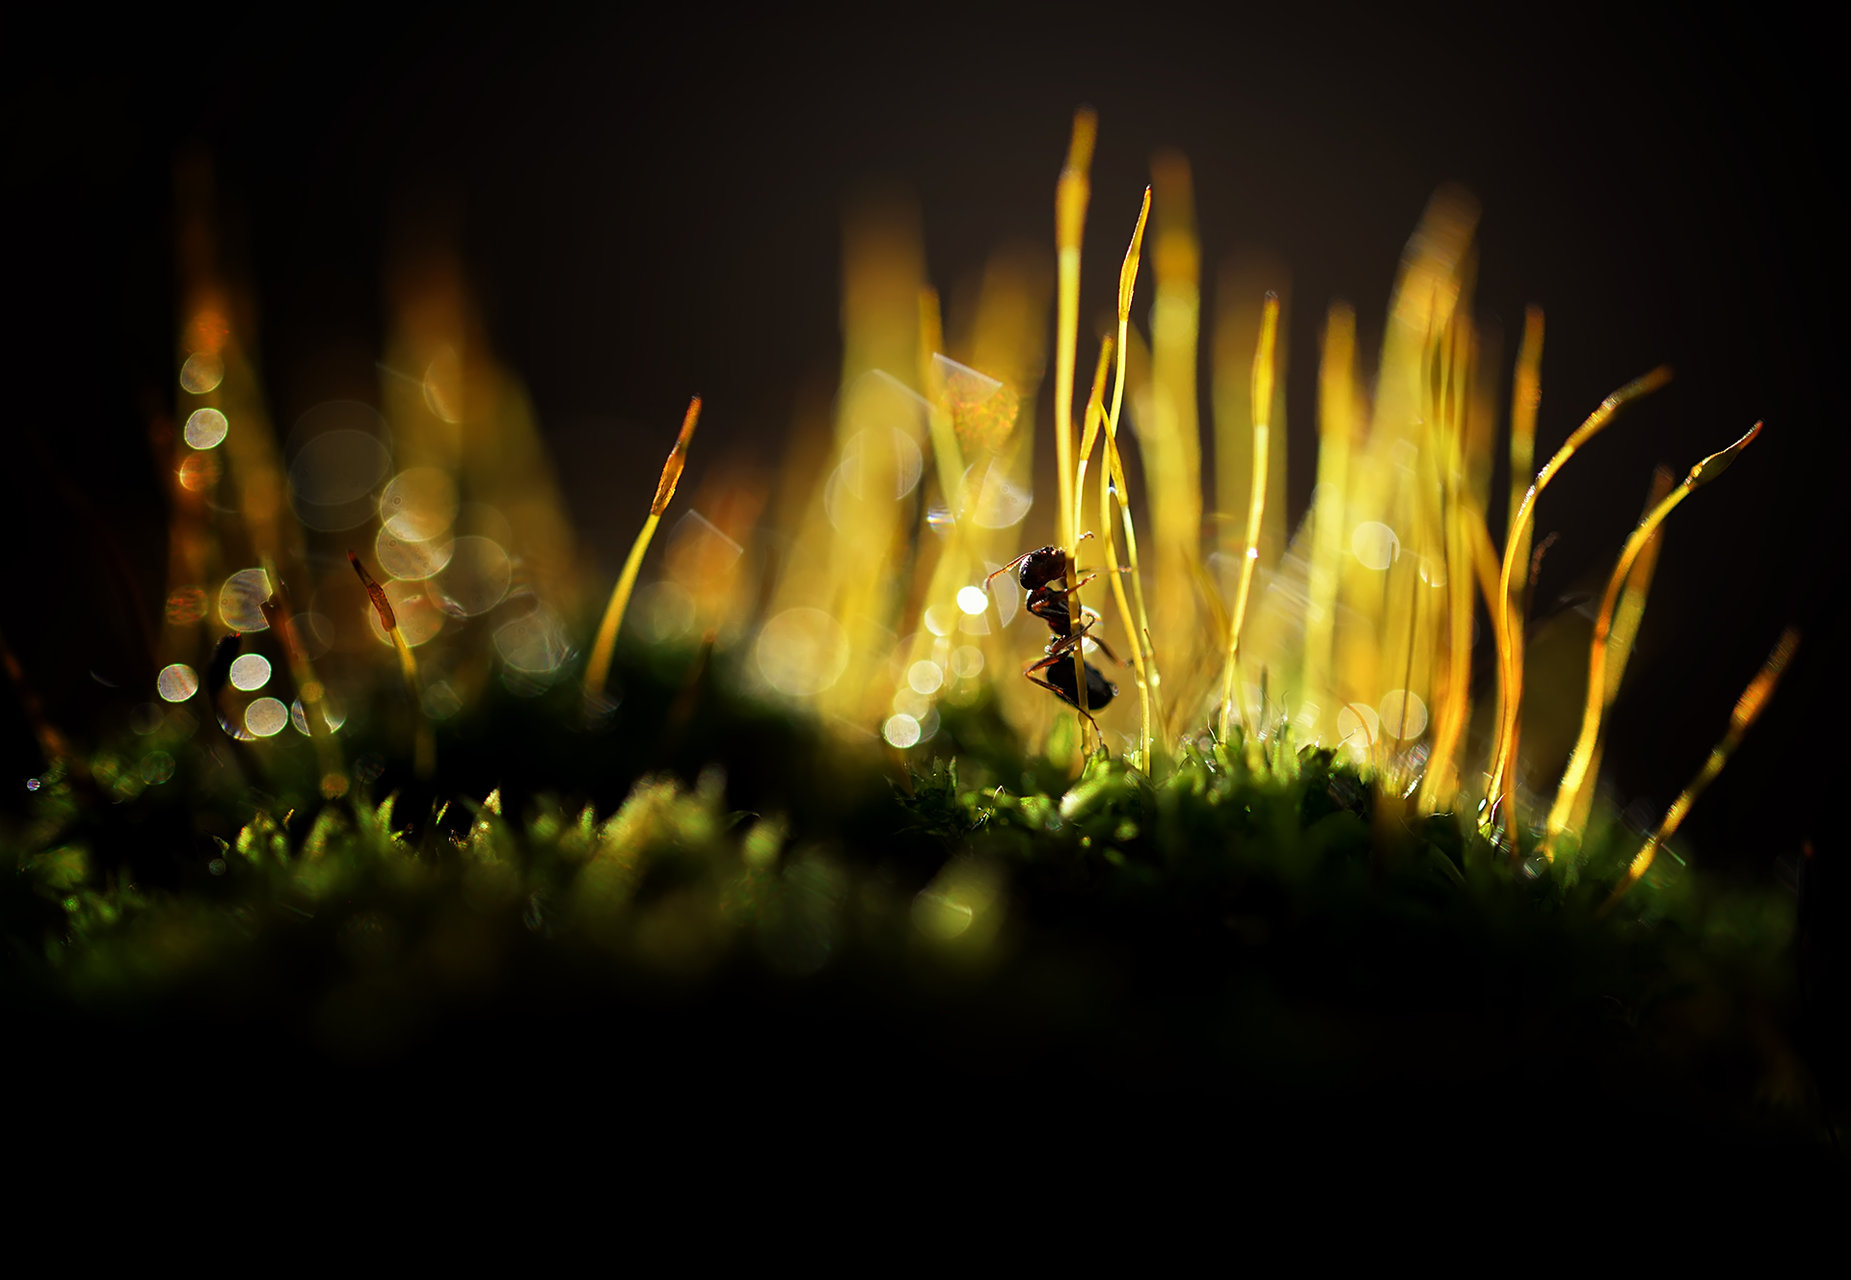 Photo in Macro | Author XristinaRuseva | PHOTO FORUM